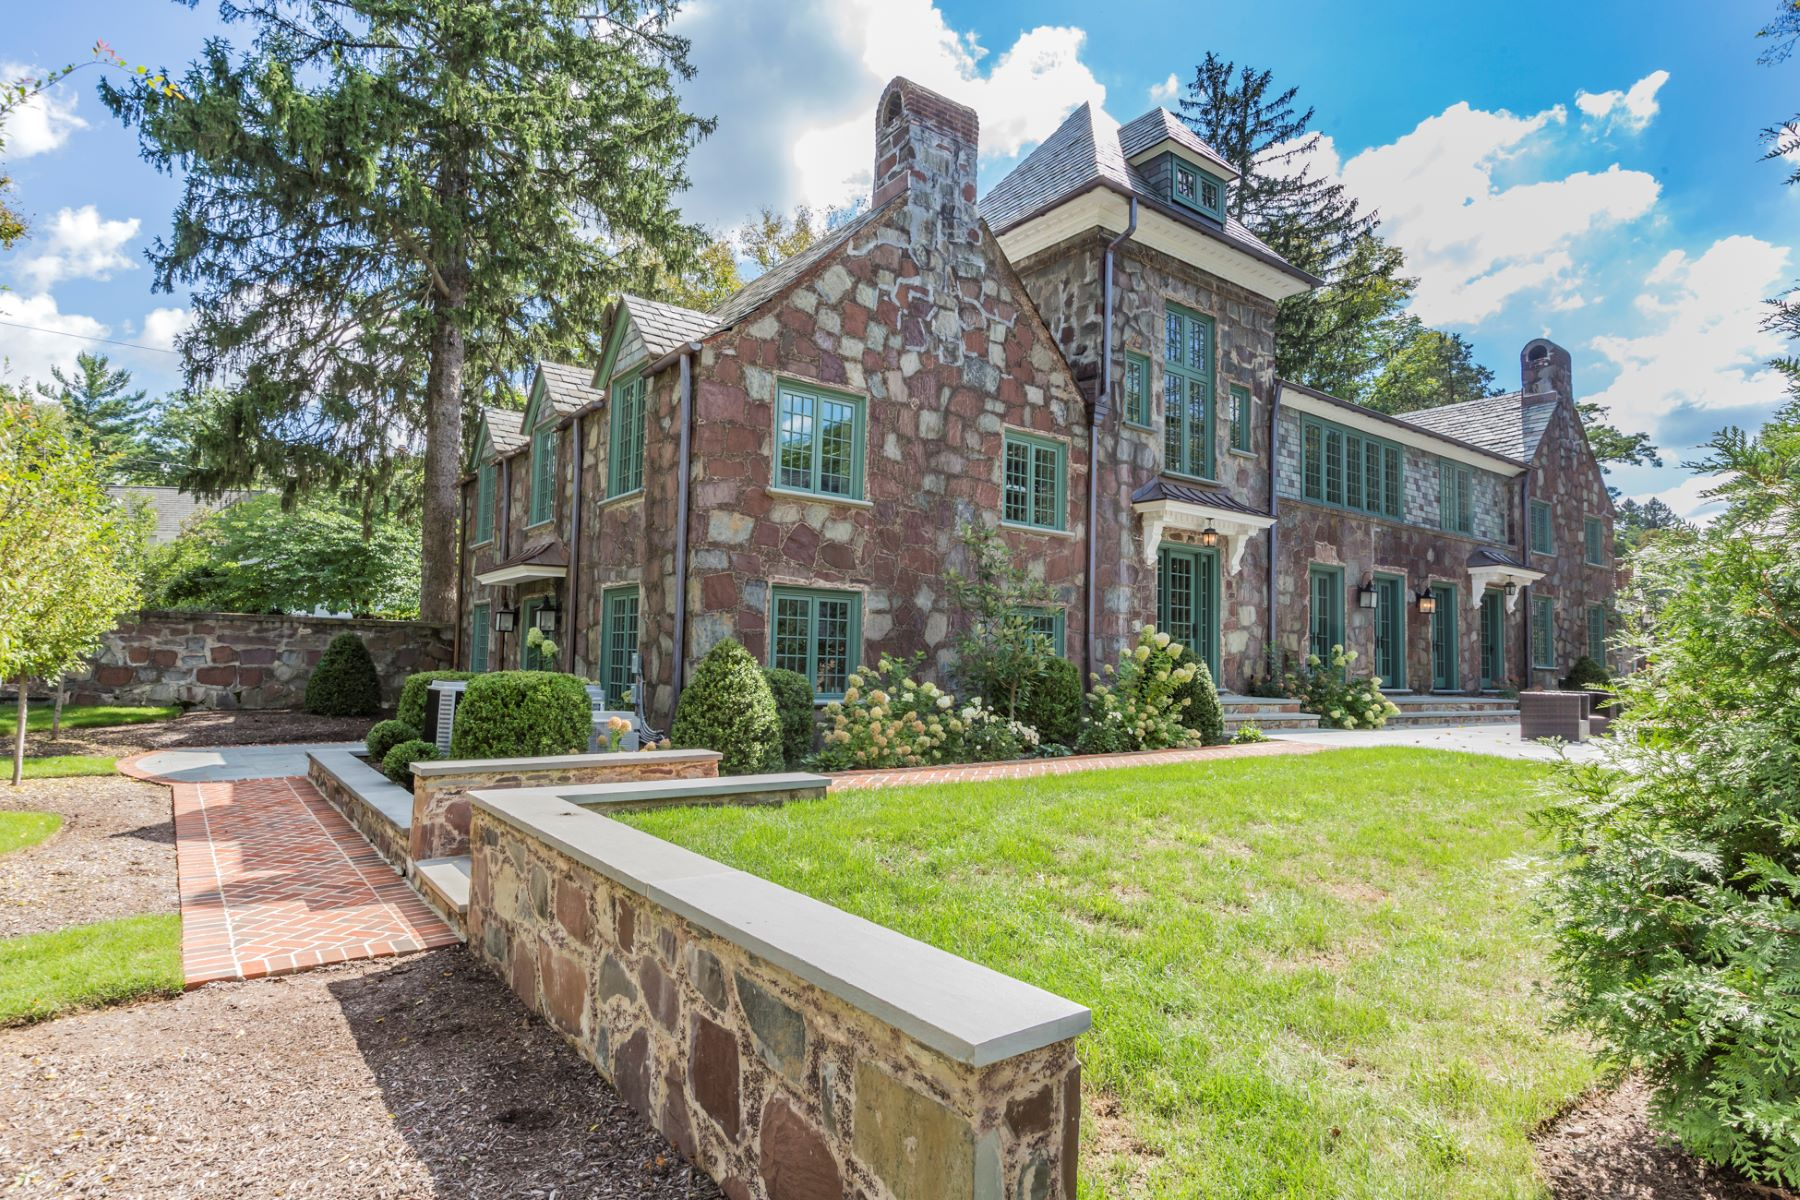 Single Family Home for Sale at A Distinctly Modern Sensibility for Legacy Home 75 Cleveland Lane, Princeton, New Jersey 08540 United States